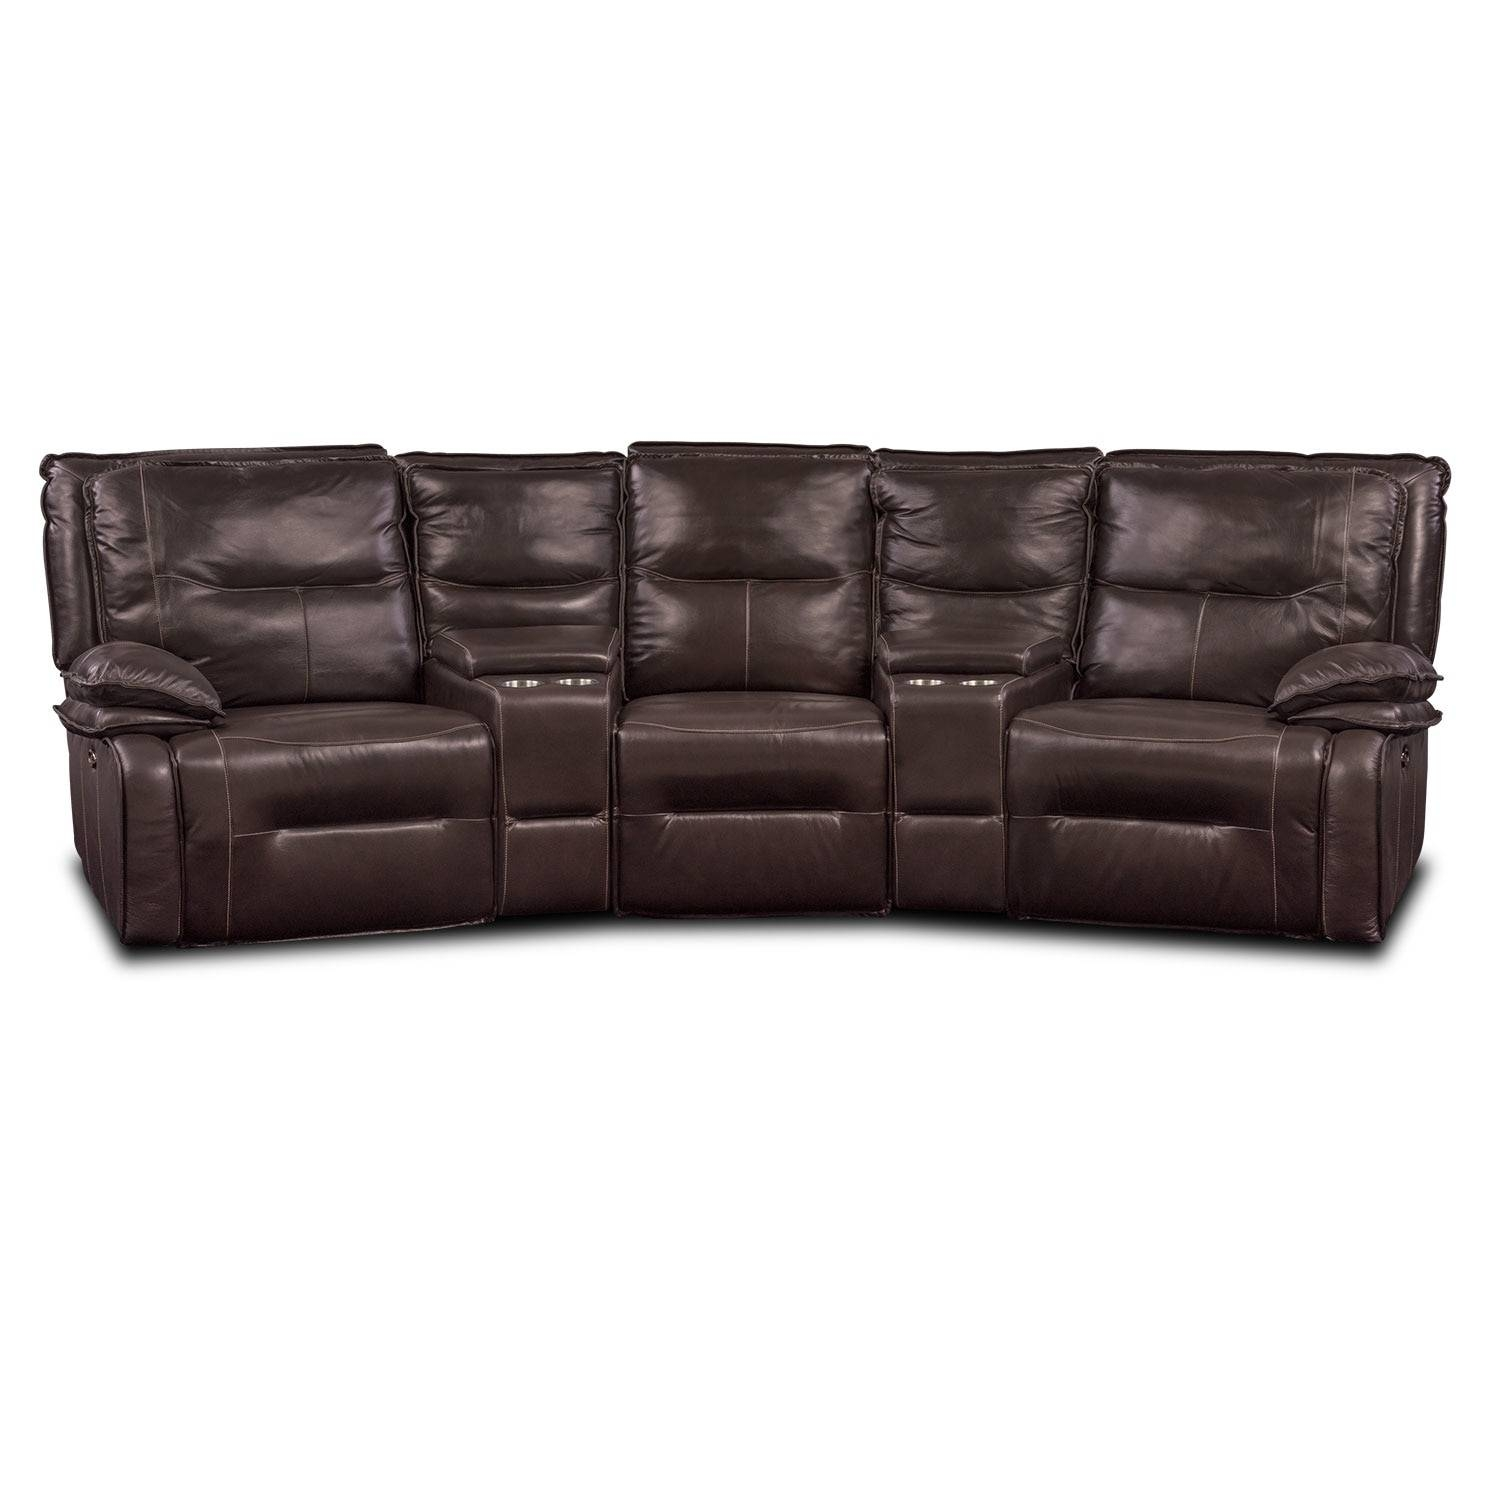 Nikki 5-Piece Power Reclining Home Theater Sectional - Brown within Theatre Sectional Sofas (Image 20 of 30)